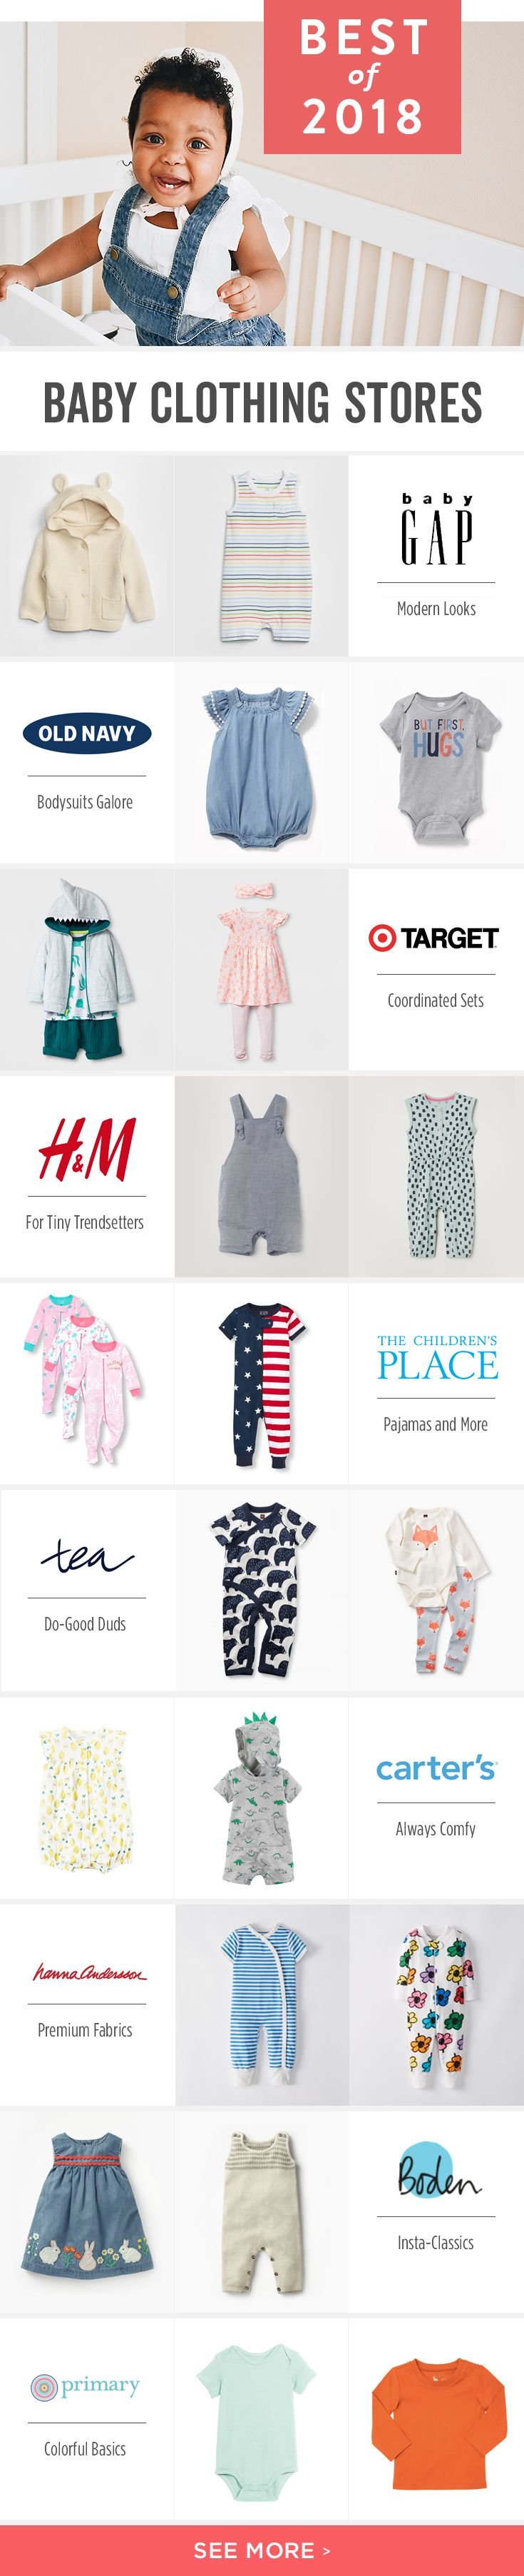 7 Baby Fashion ideas  baby fashion, baby, baby clothes